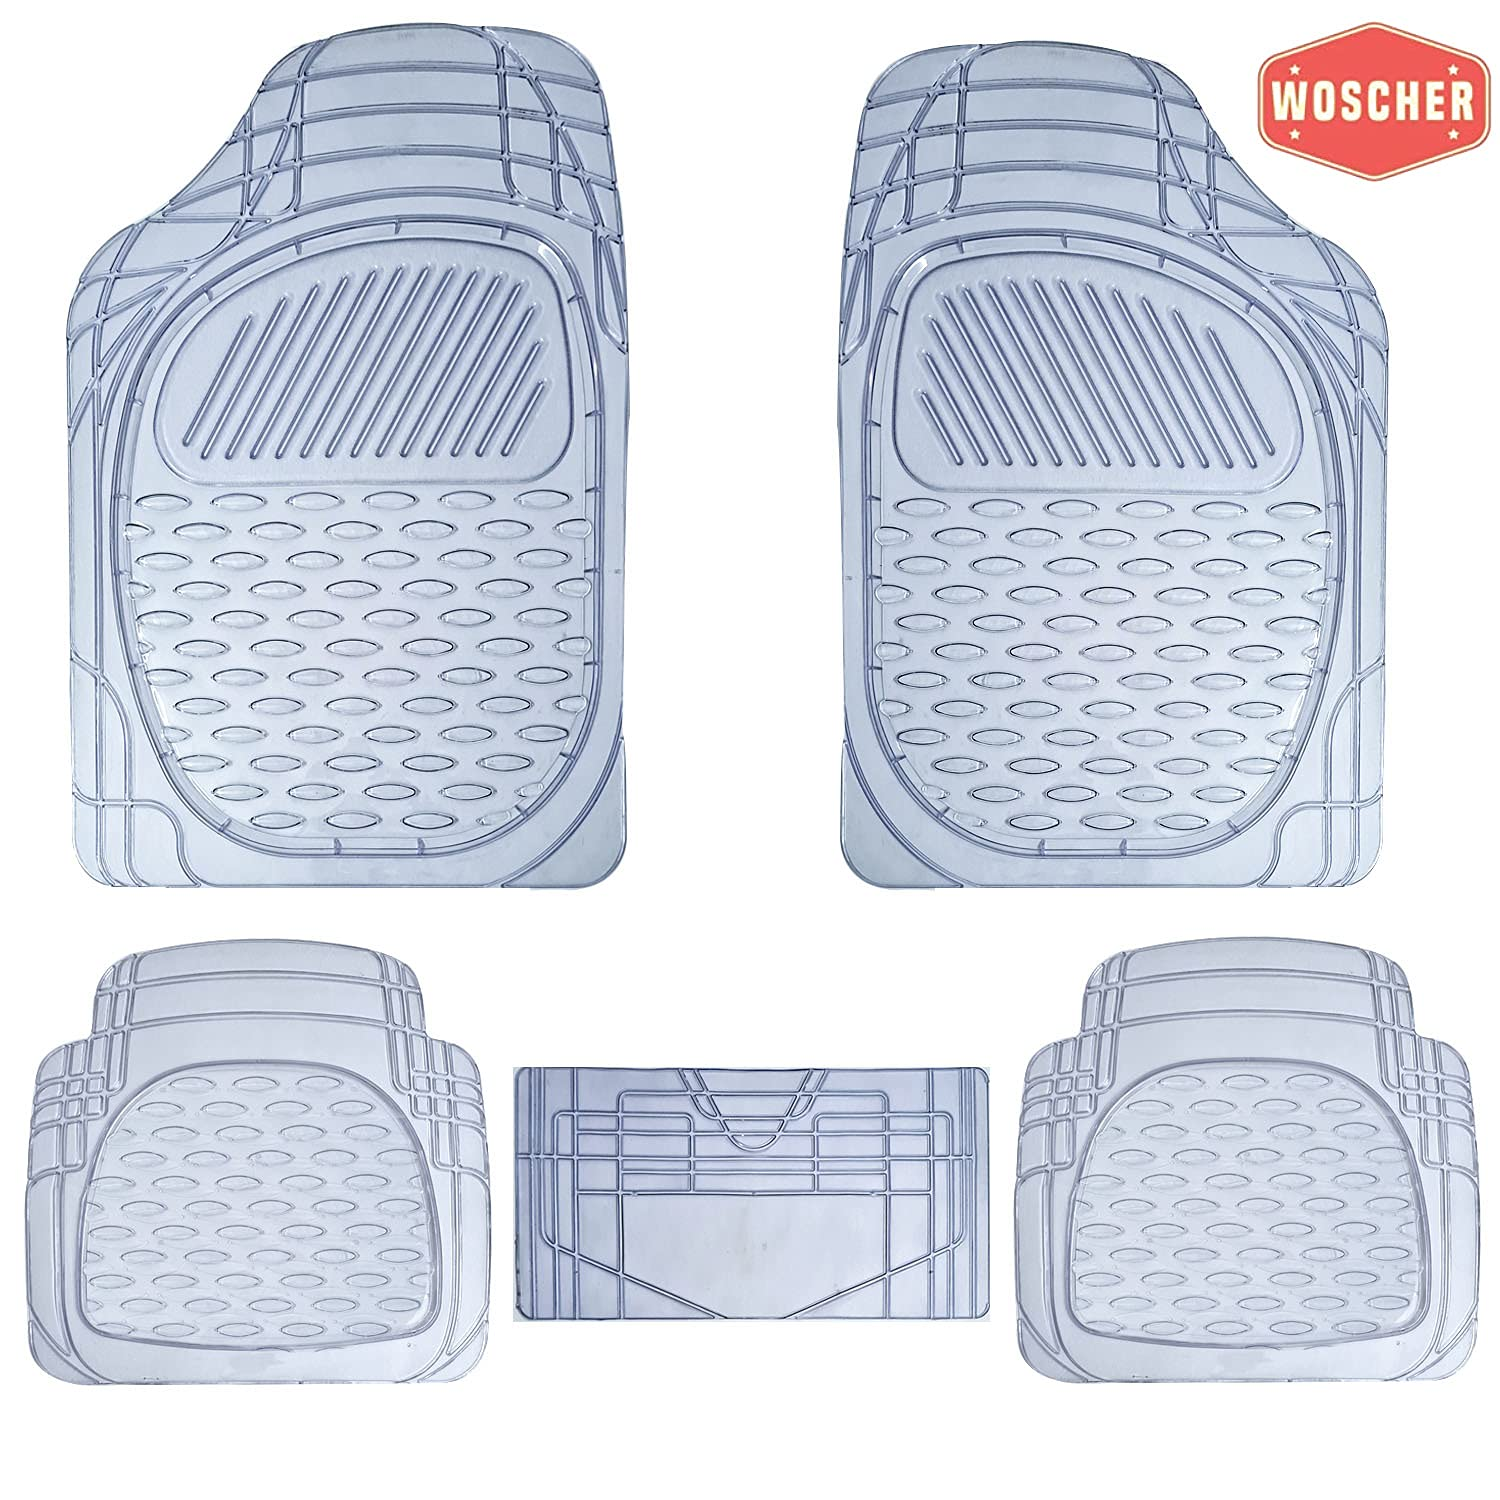 woscher-6255-felxtough-all-season-pvc-car-foot-mat-for-car-universal-for-all-cars-self-cut-to-perfect-fit-clear